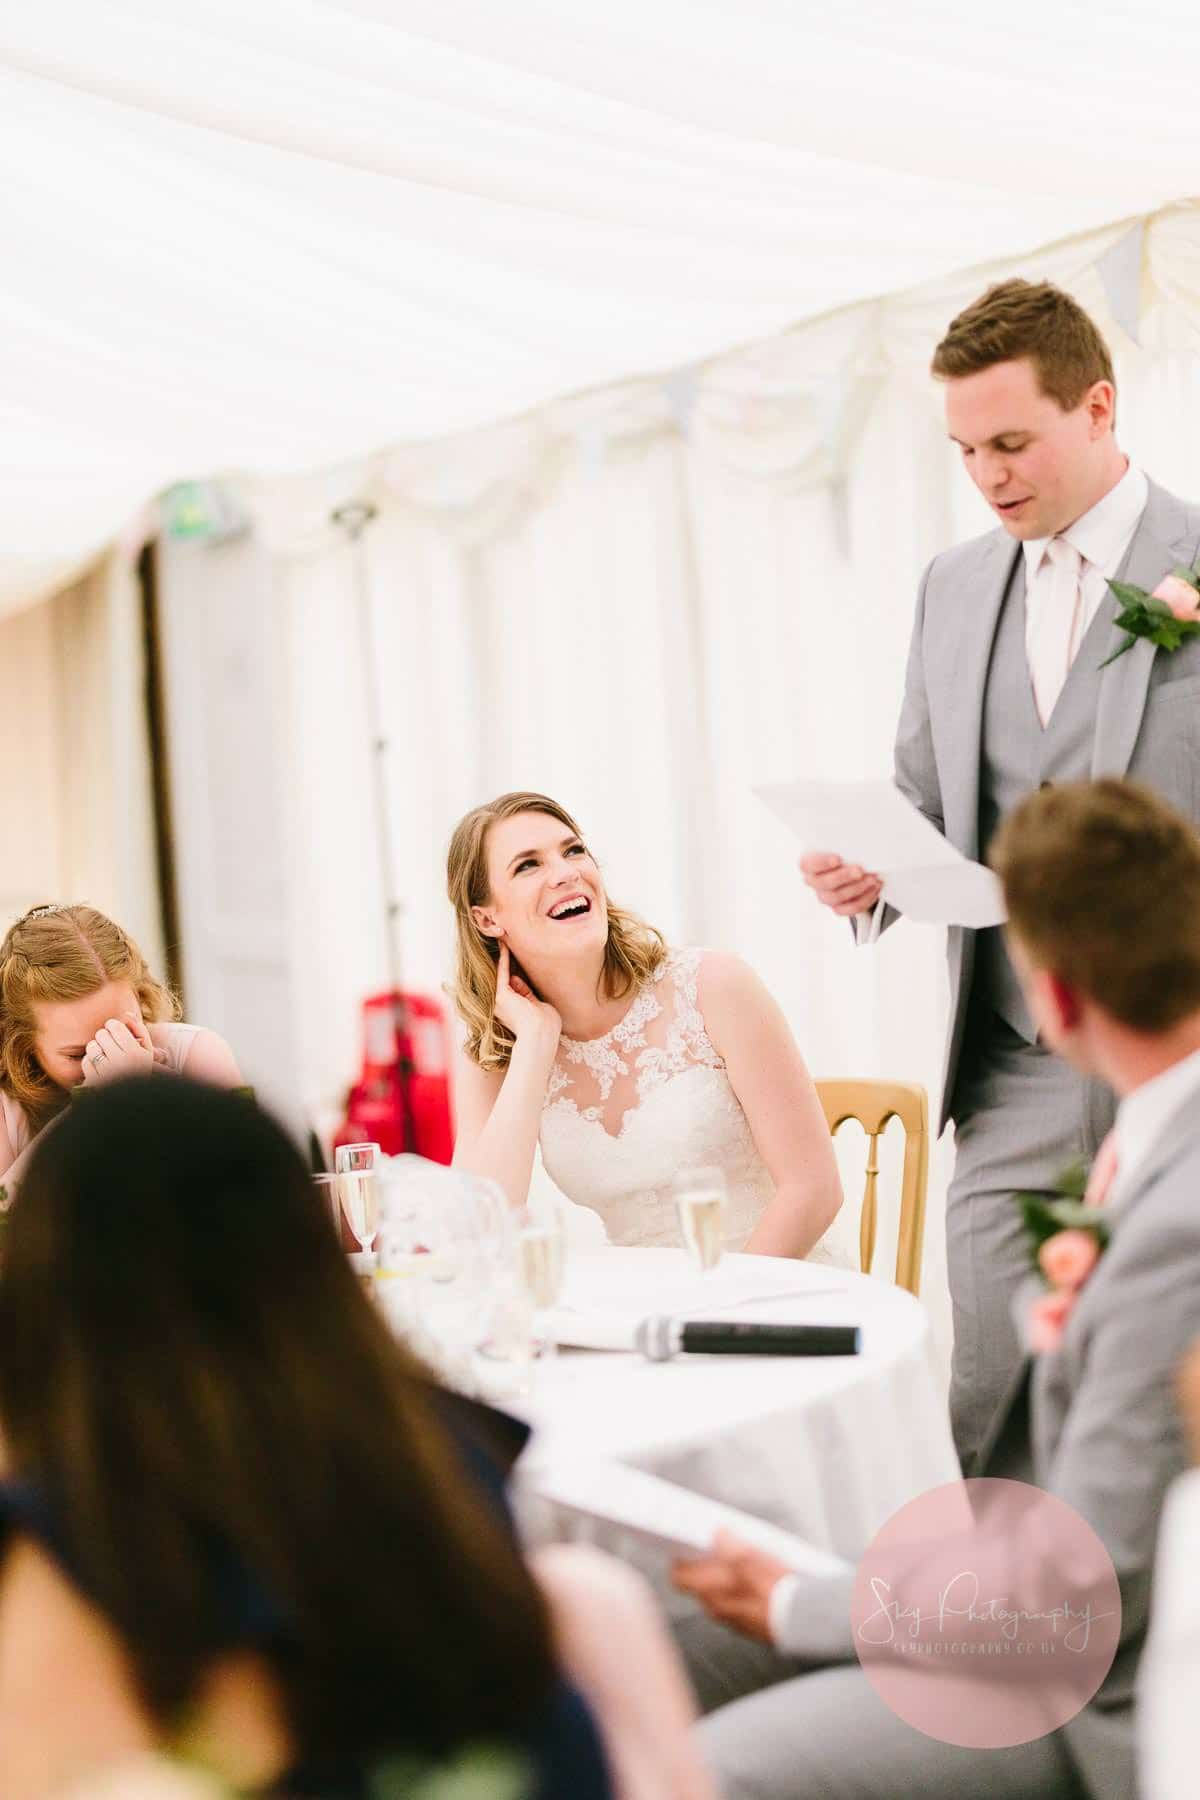 The bride laughing at the groom as he speaks to their guests